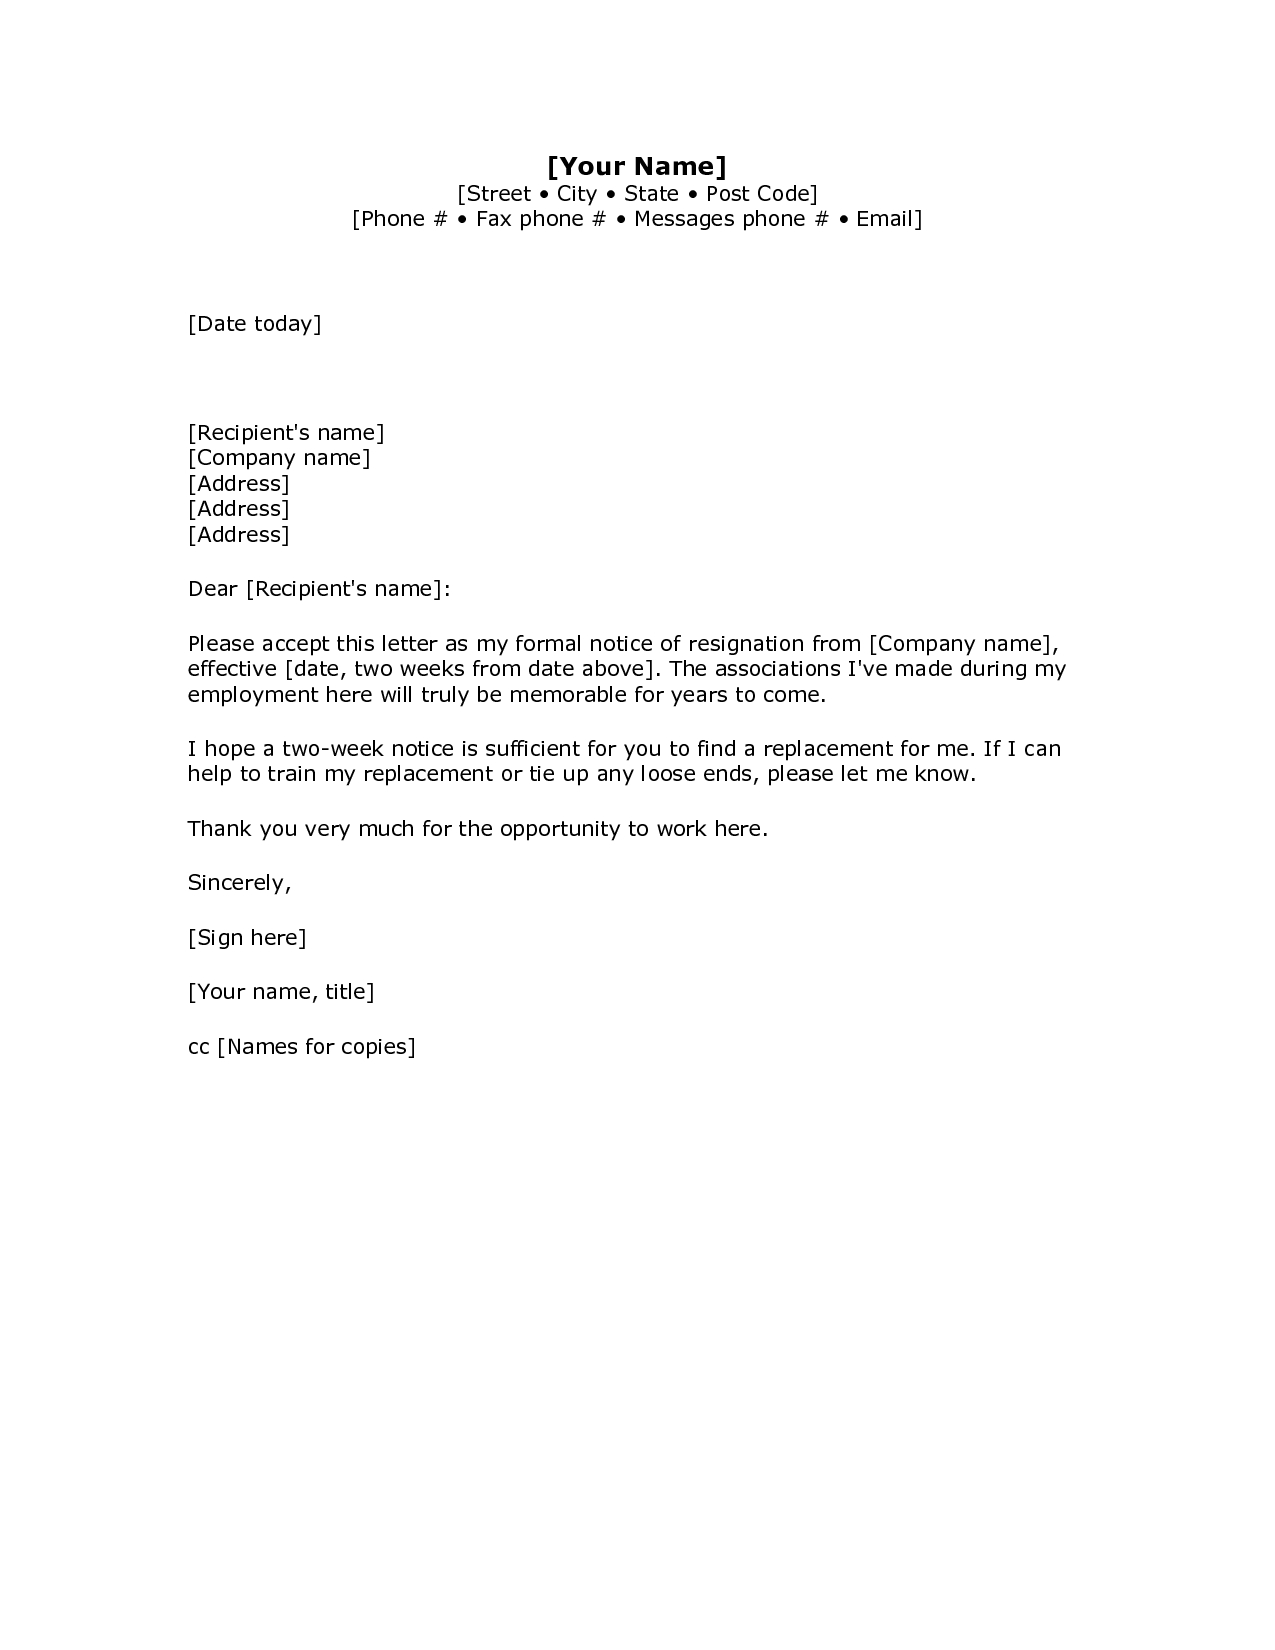 writing a resignation letter template example-2 Weeks Notice Letter Resignation Letter Week Notice Words HDWriting A Letter Resignation Email Letter Sample 8-o